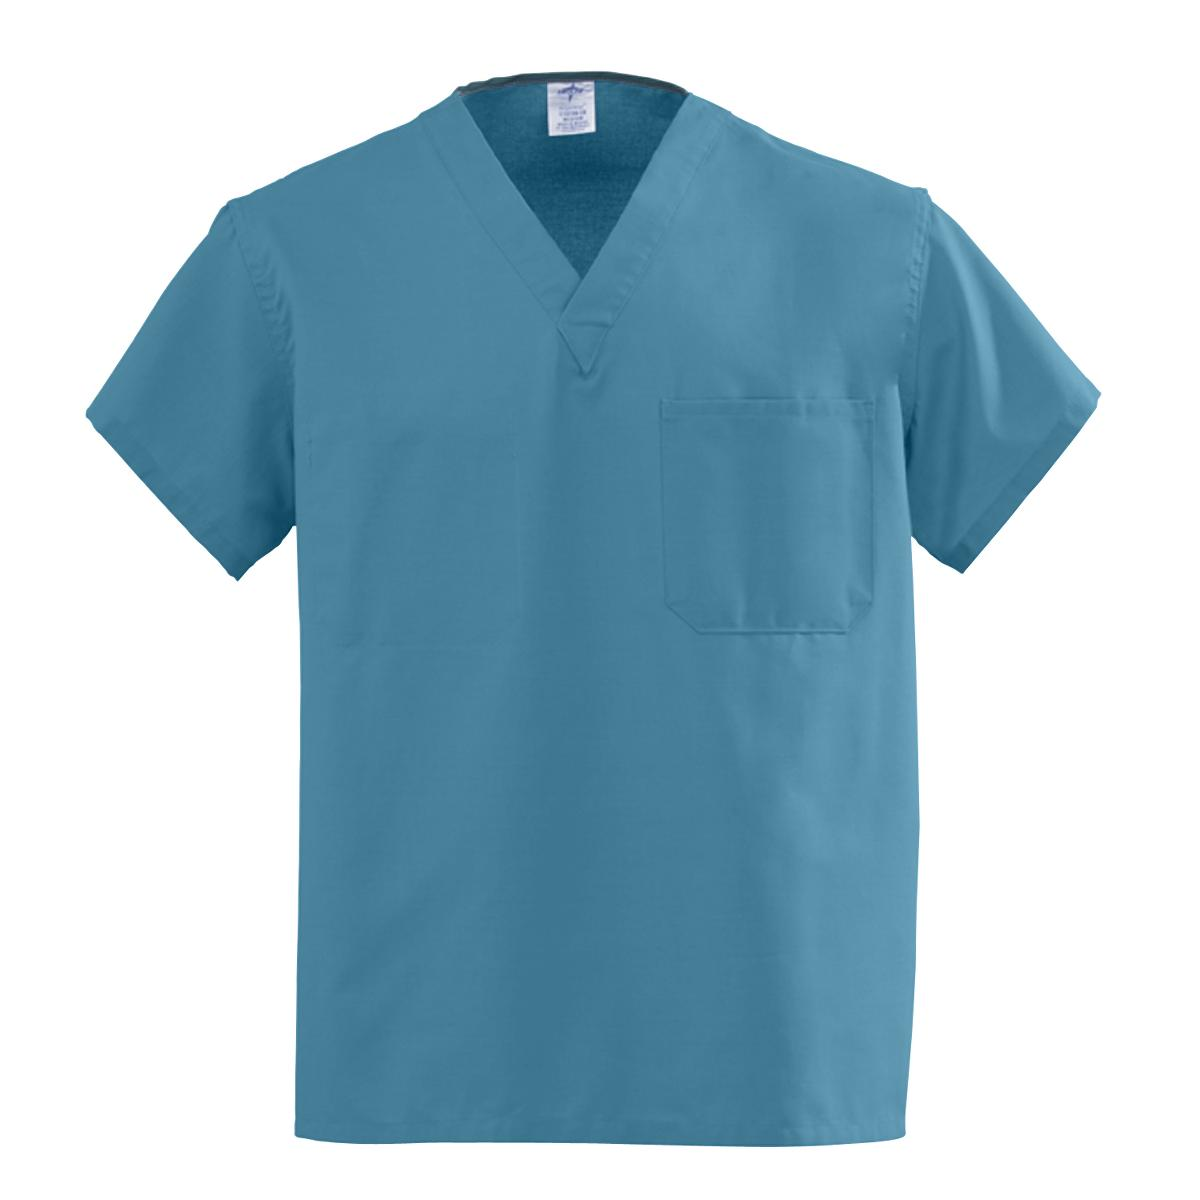 Angelstat Unisex Reversible Scrub Top-Medline